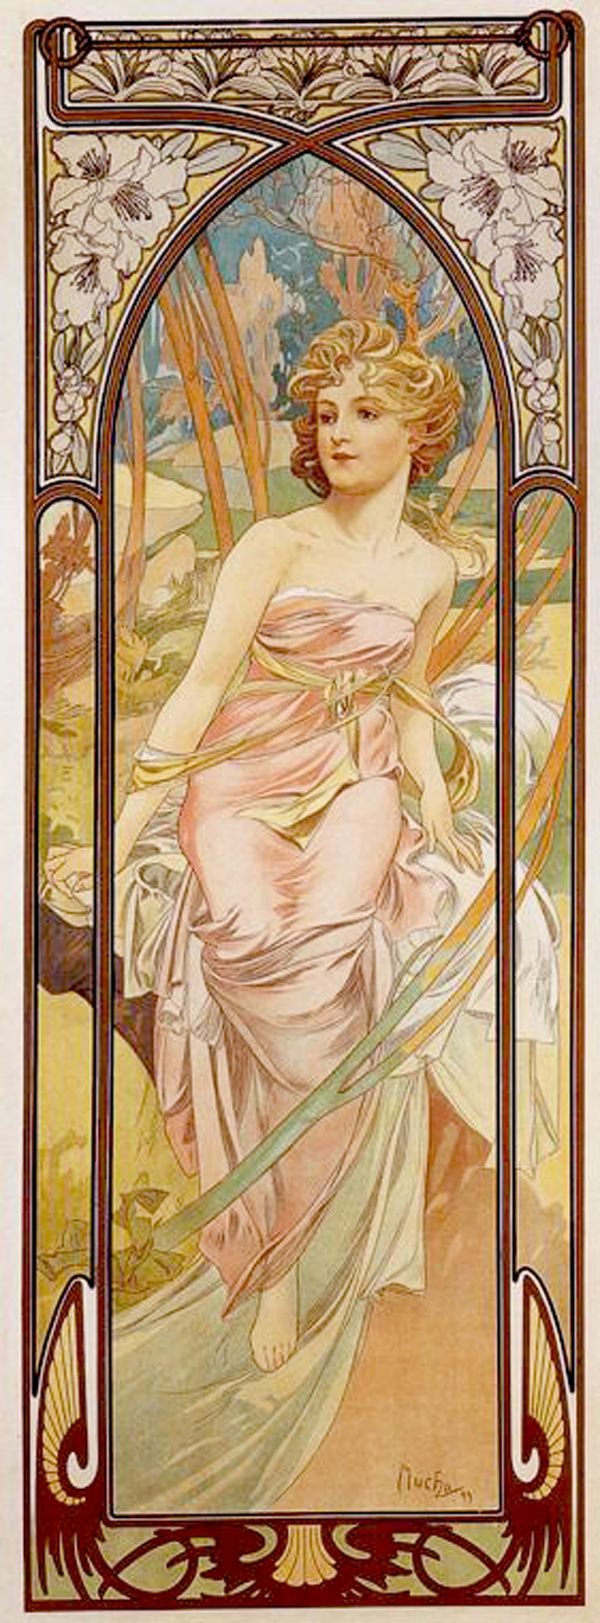 Alphonse Mucha (Czech, 1860 - 1939). The Times of the Day: Morning Awakening, 1899. Color Lithograph, 107.7 x 39 cm.